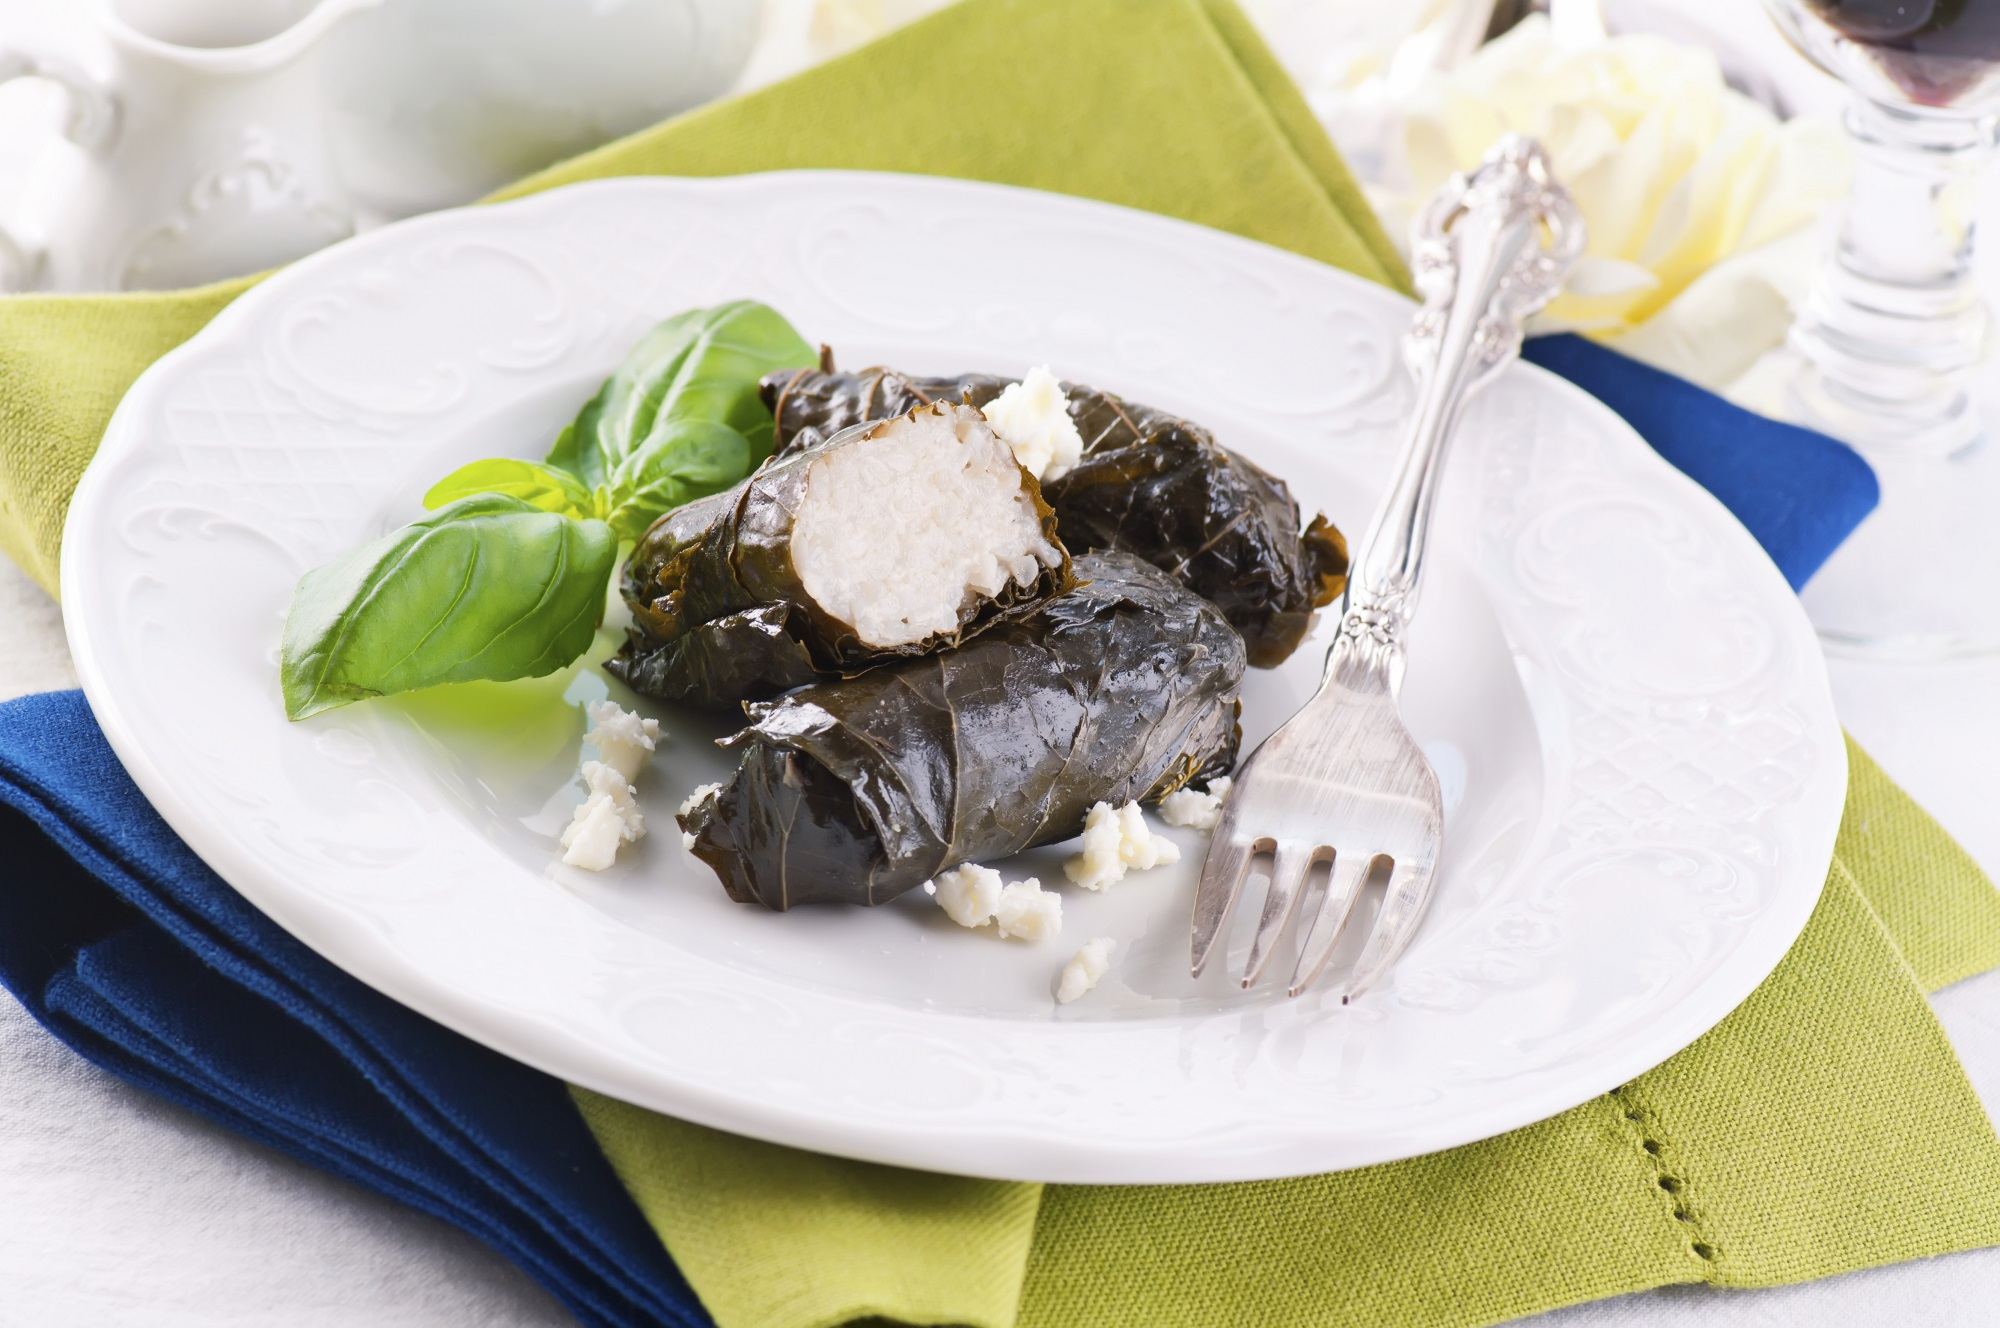 Dolma stuffed with rice and feta